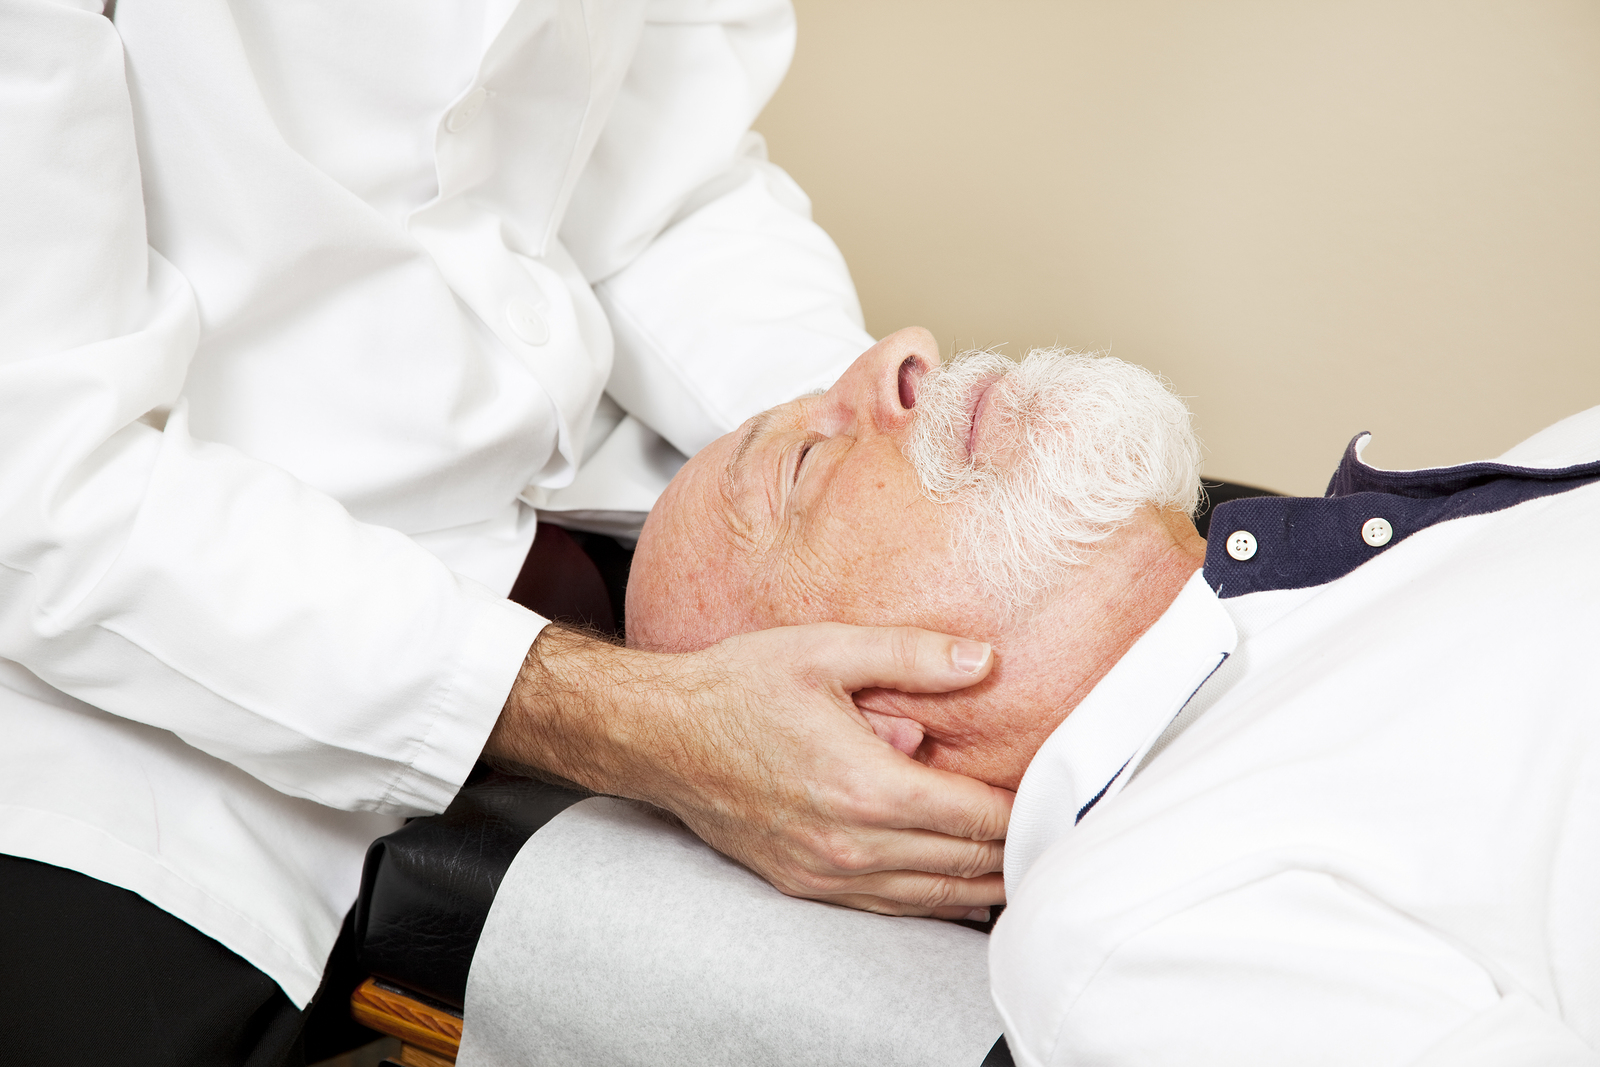 Are you looking for natural pain relief without surgery or drugs? An adjustment may help; call our chiropractor in Elkridge today to learn more!